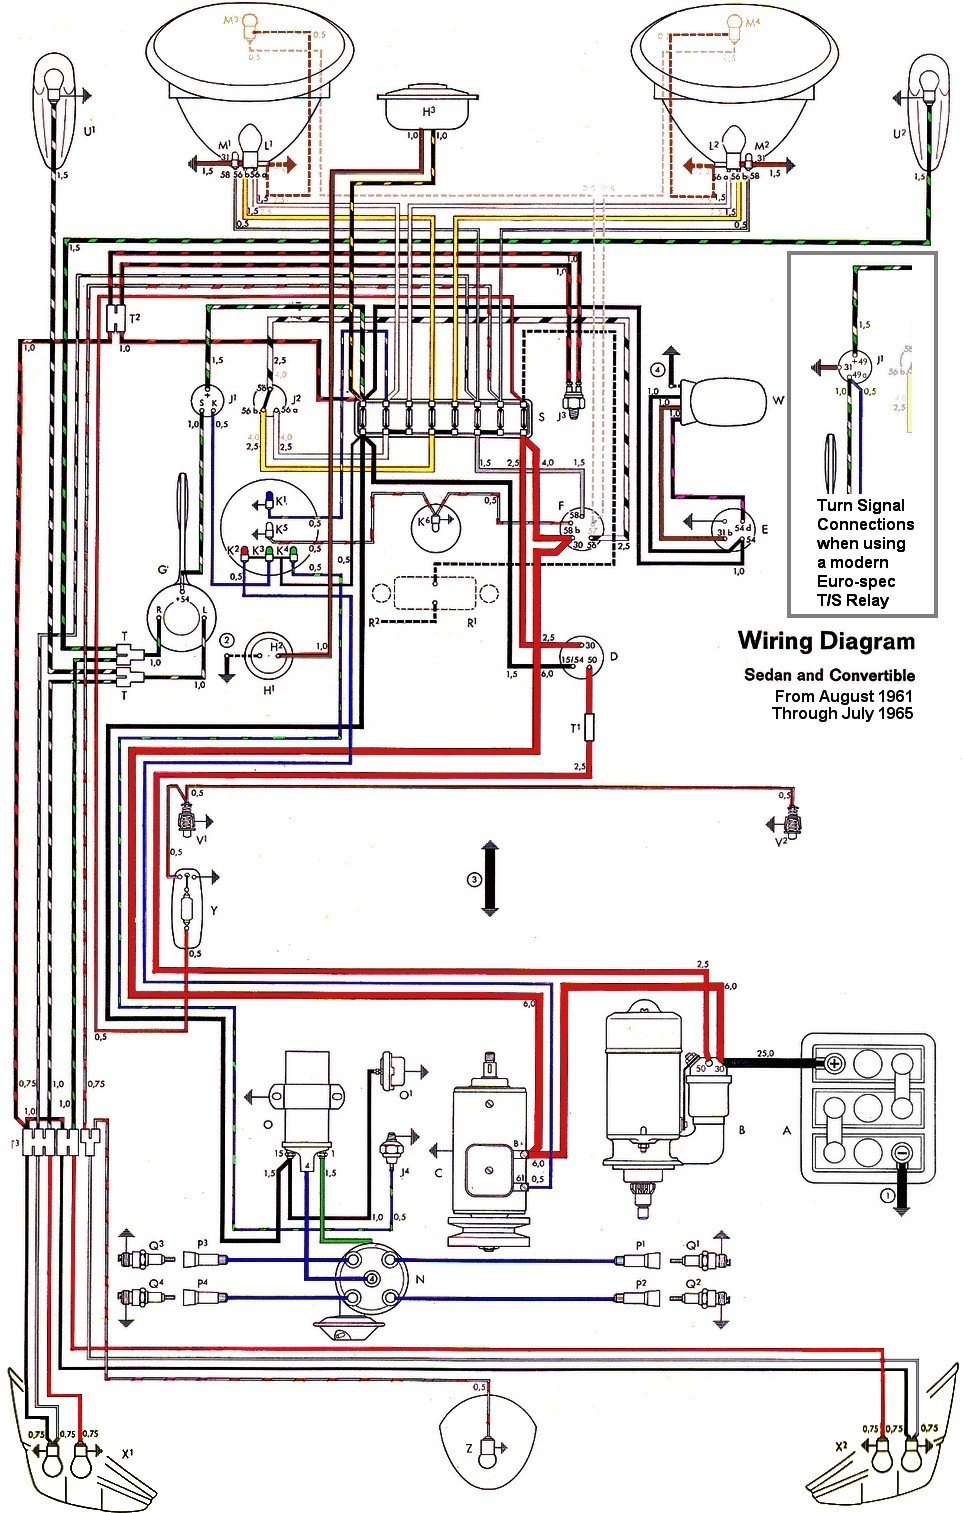 74 Vw Wiring Diagram - Schema Wiring Diagram  Vw New Beetle Wiring Schematic on vw beetle specifications, vw beetle radio, vw beetle hood, vw beetle forum, vw beetle shop manual, vw beetle service manual, vw beetle pickup, vw beetle gauges, vw beetle diagram, vw beetle fuses, vw beetle controls, vw beetle seat, vw beetle bug, vw beetle headlights, vw beetle performance, vw beetle fuel pump relay, vw beetle parts list, vw beetle battery, vw beetle starter, vw beetle throttle position sensor,